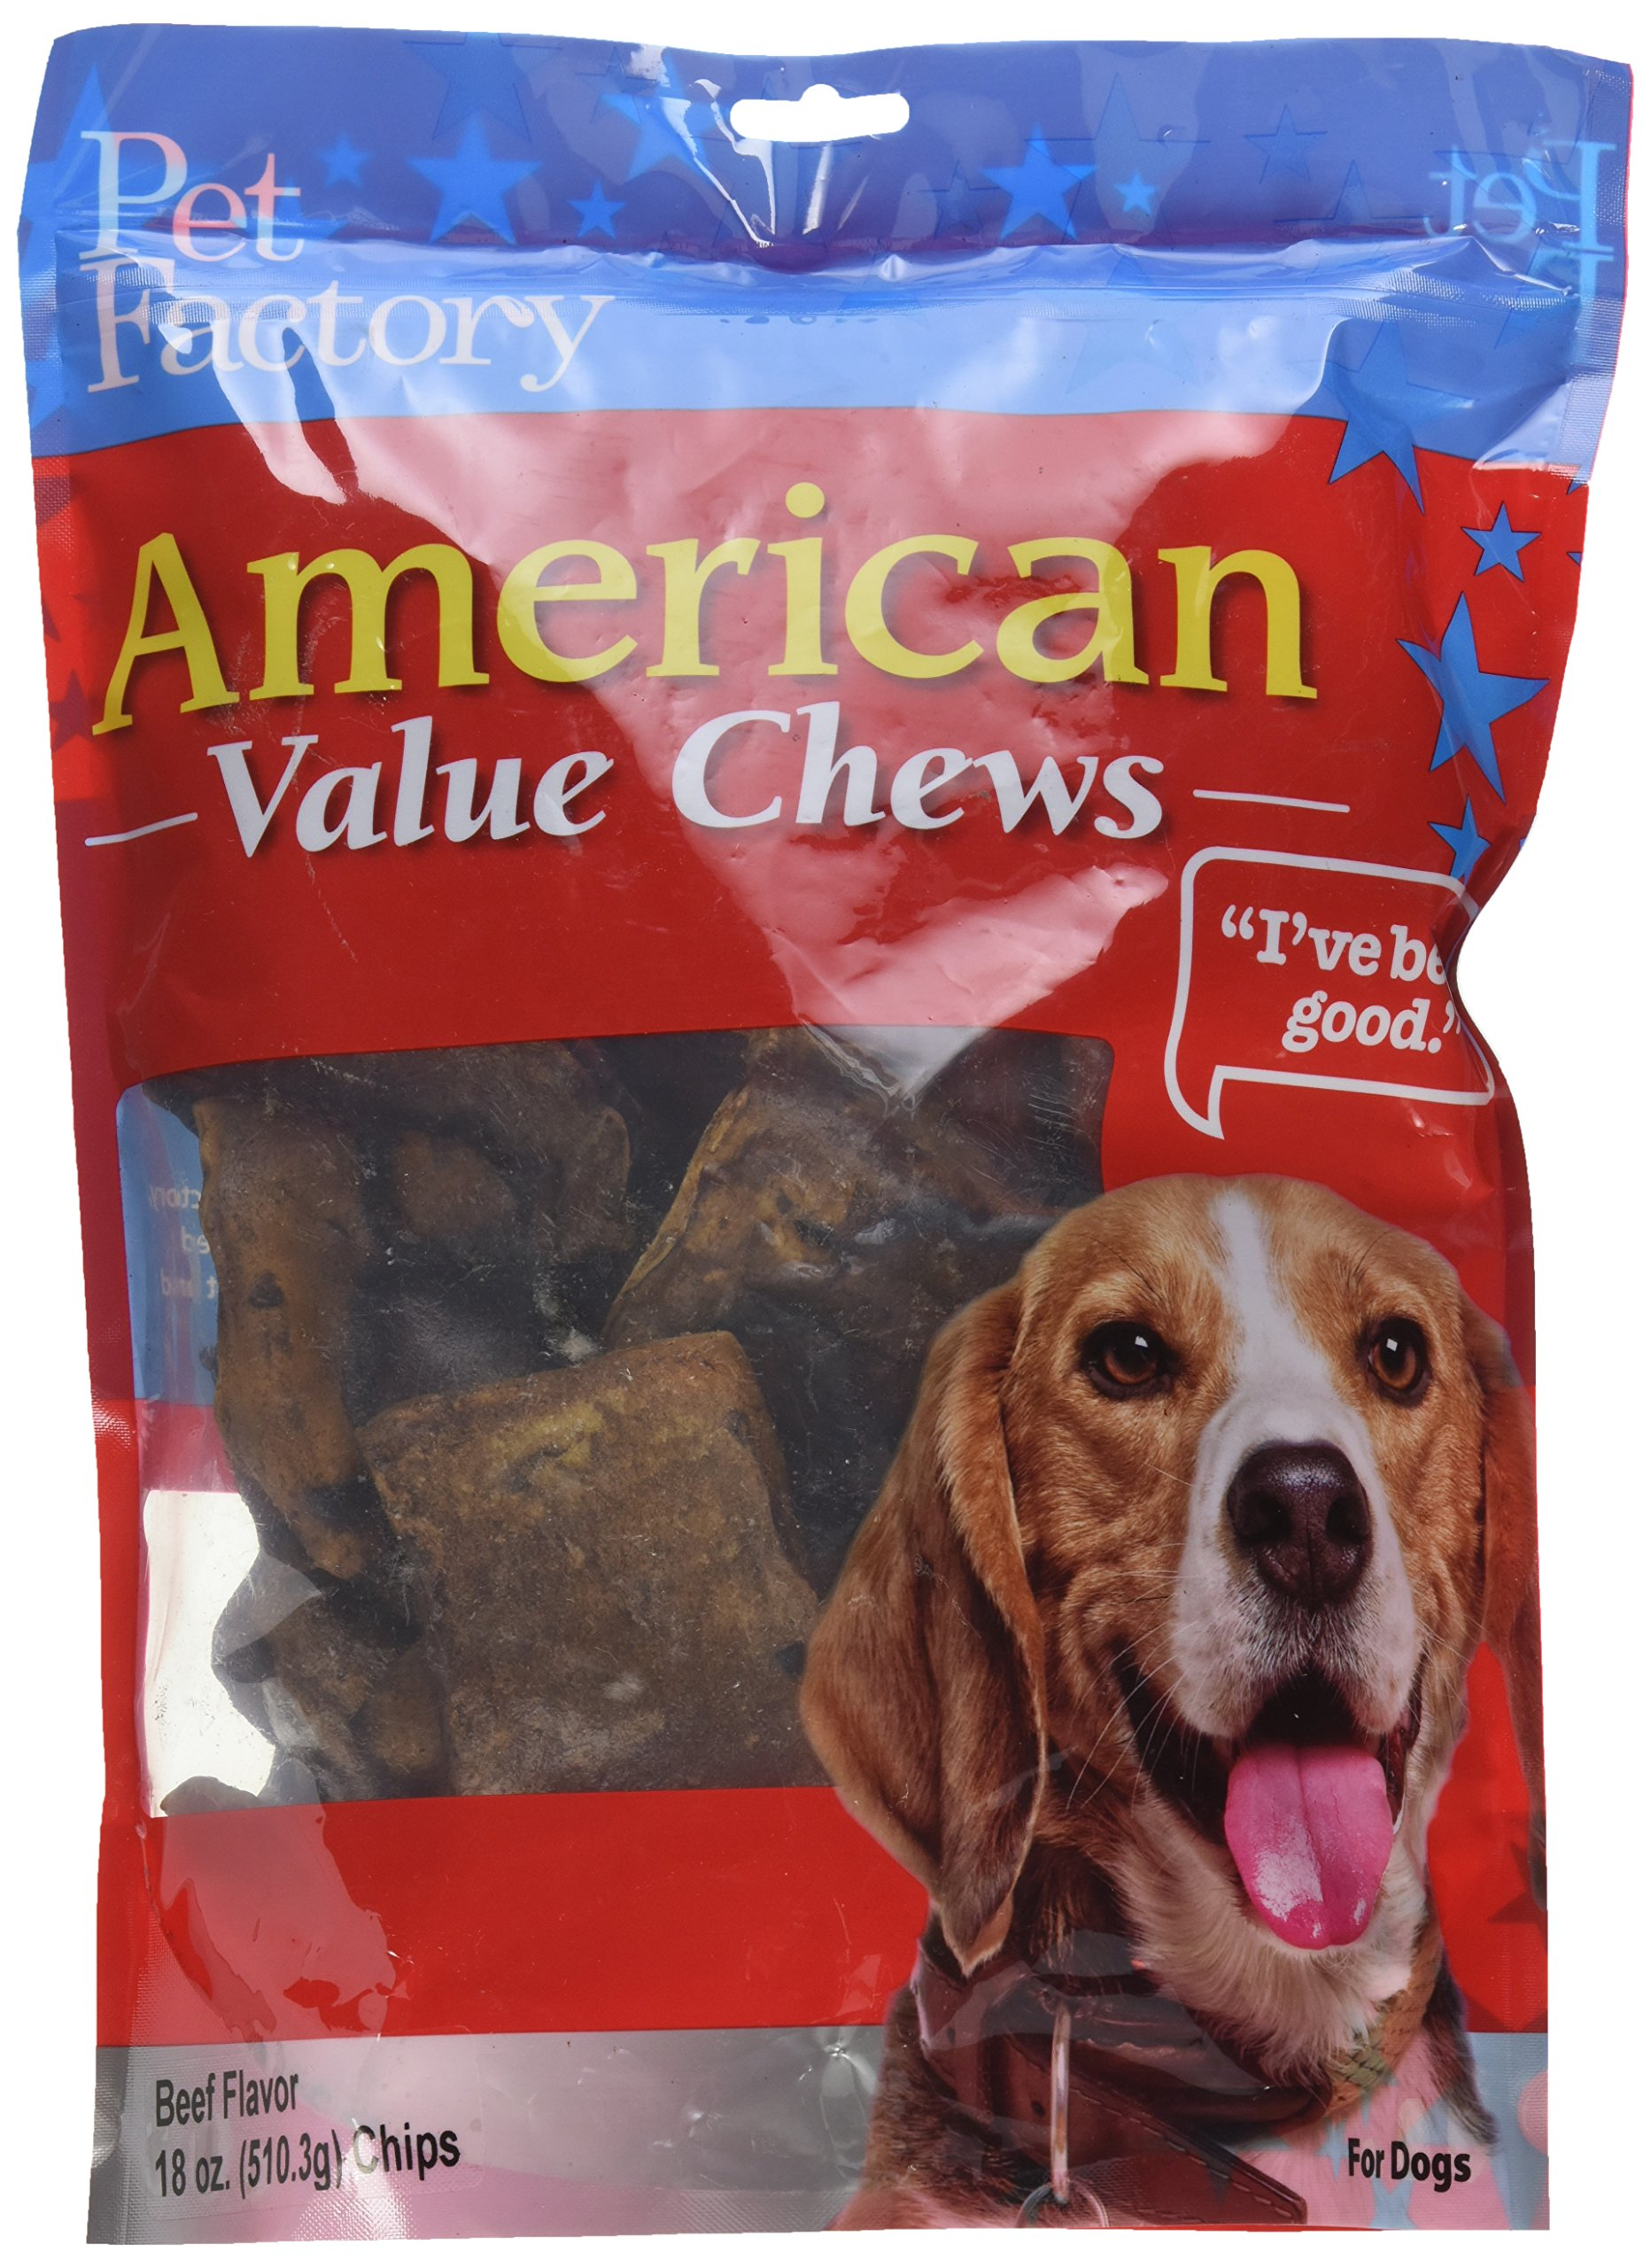 Pet Factory American Beef Hide Beef Flavored Chips Chews for Dogs, Small/18 oz by Pet Factory